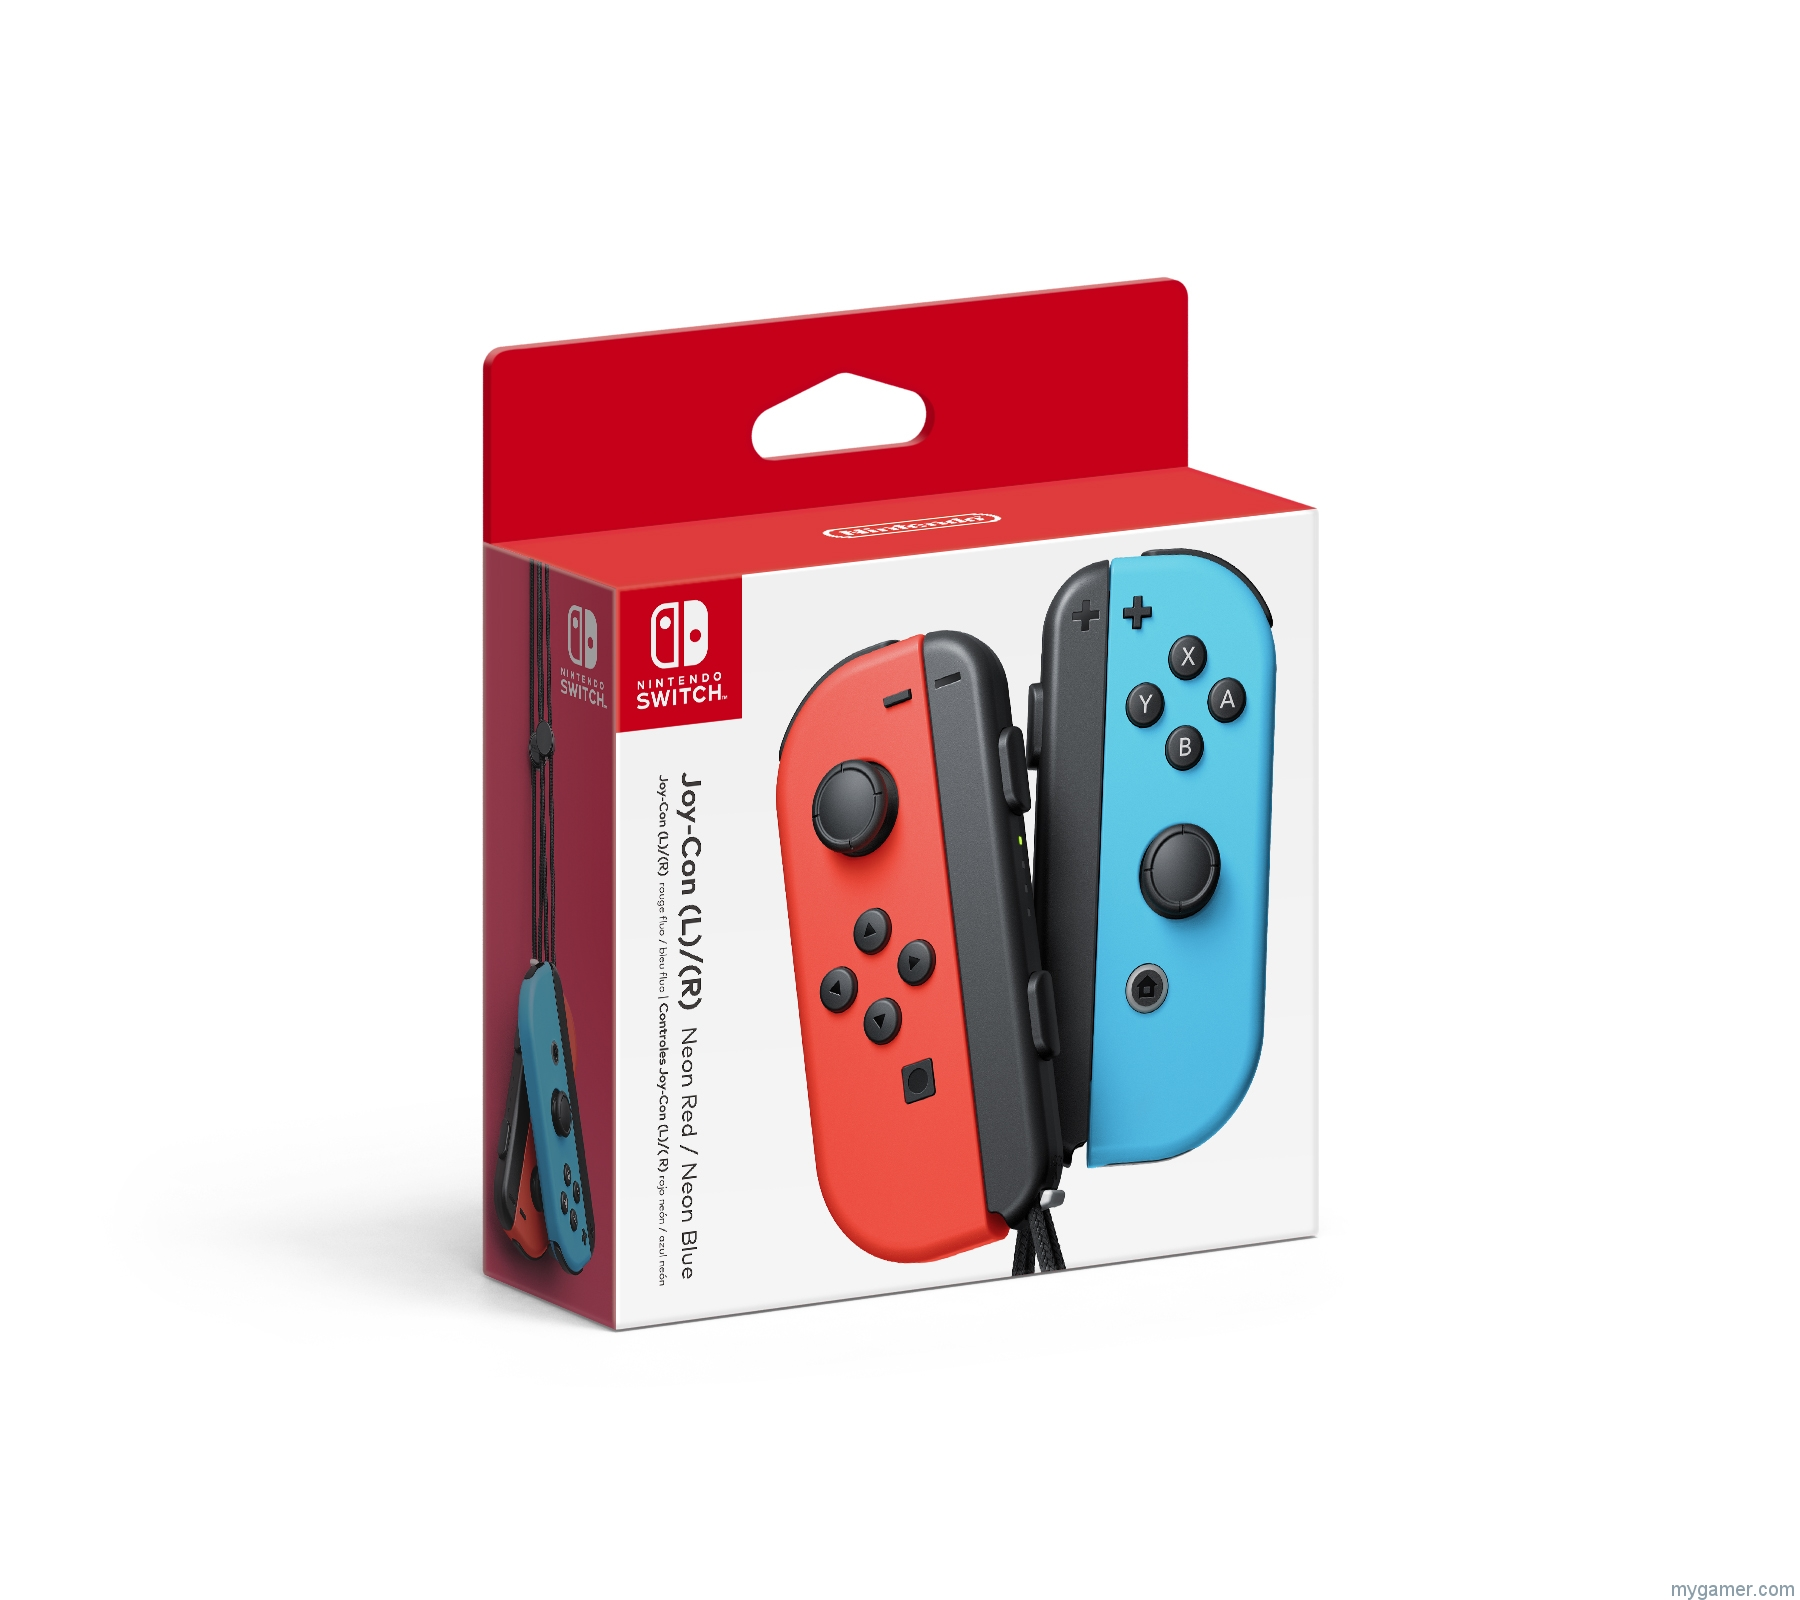 5 Reasons Why I Am I Not Buying A Switch At Launch 5 Reasons Why I Am I Not Buying A Switch At Launch NintendoSwitch hardware Joy Con 08